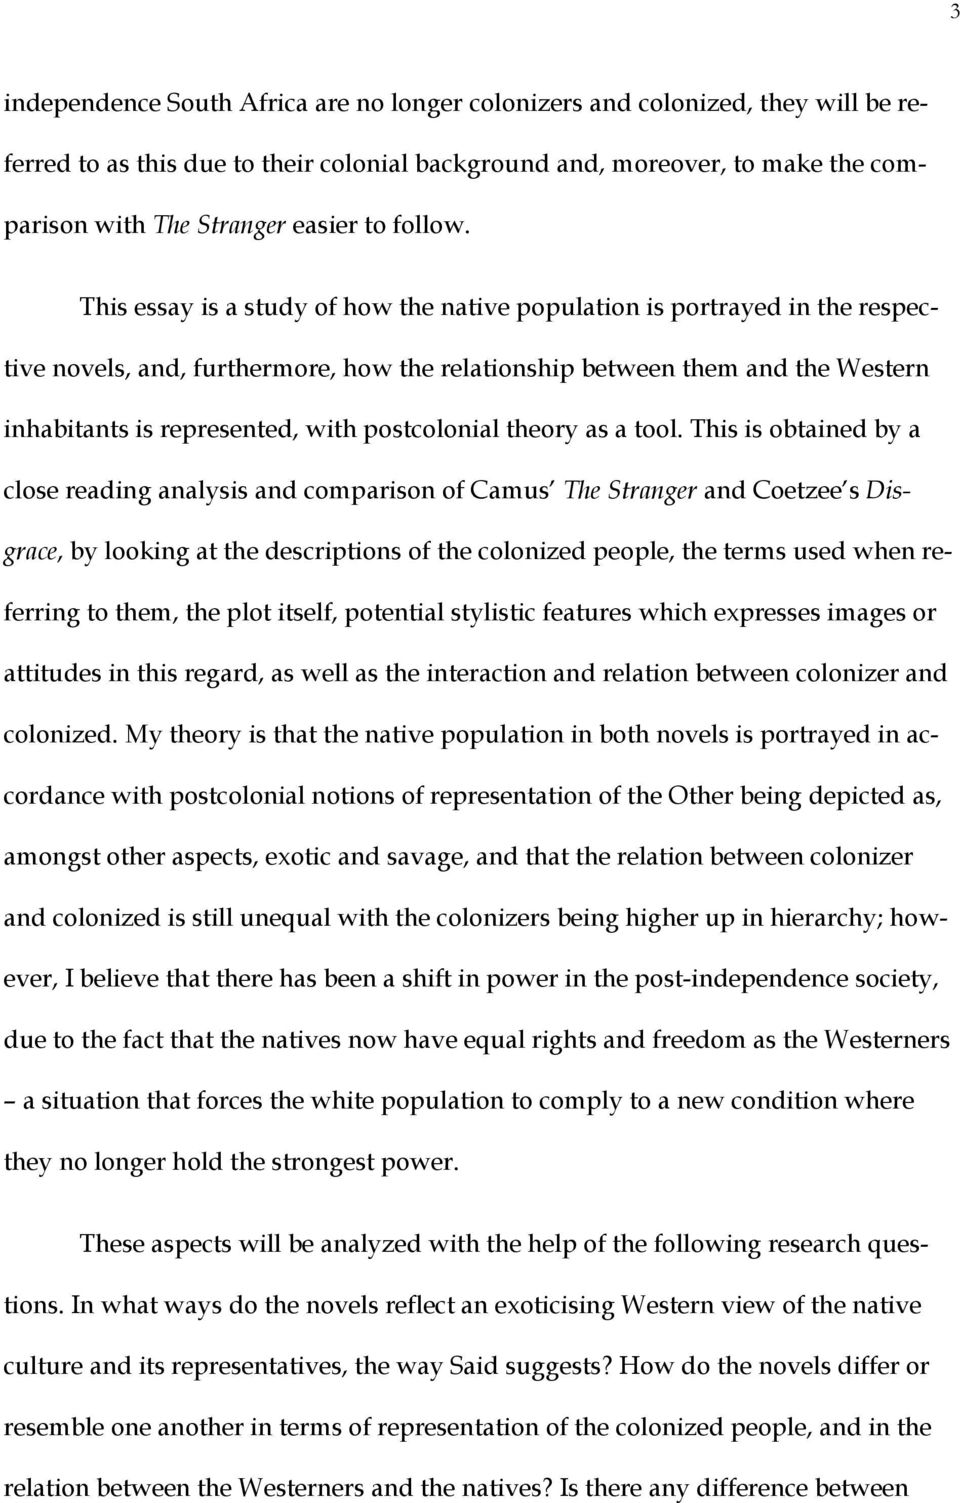 This essay is a study of how the native population is portrayed in the respective novels, and, furthermore, how the relationship between them and the Western inhabitants is represented, with